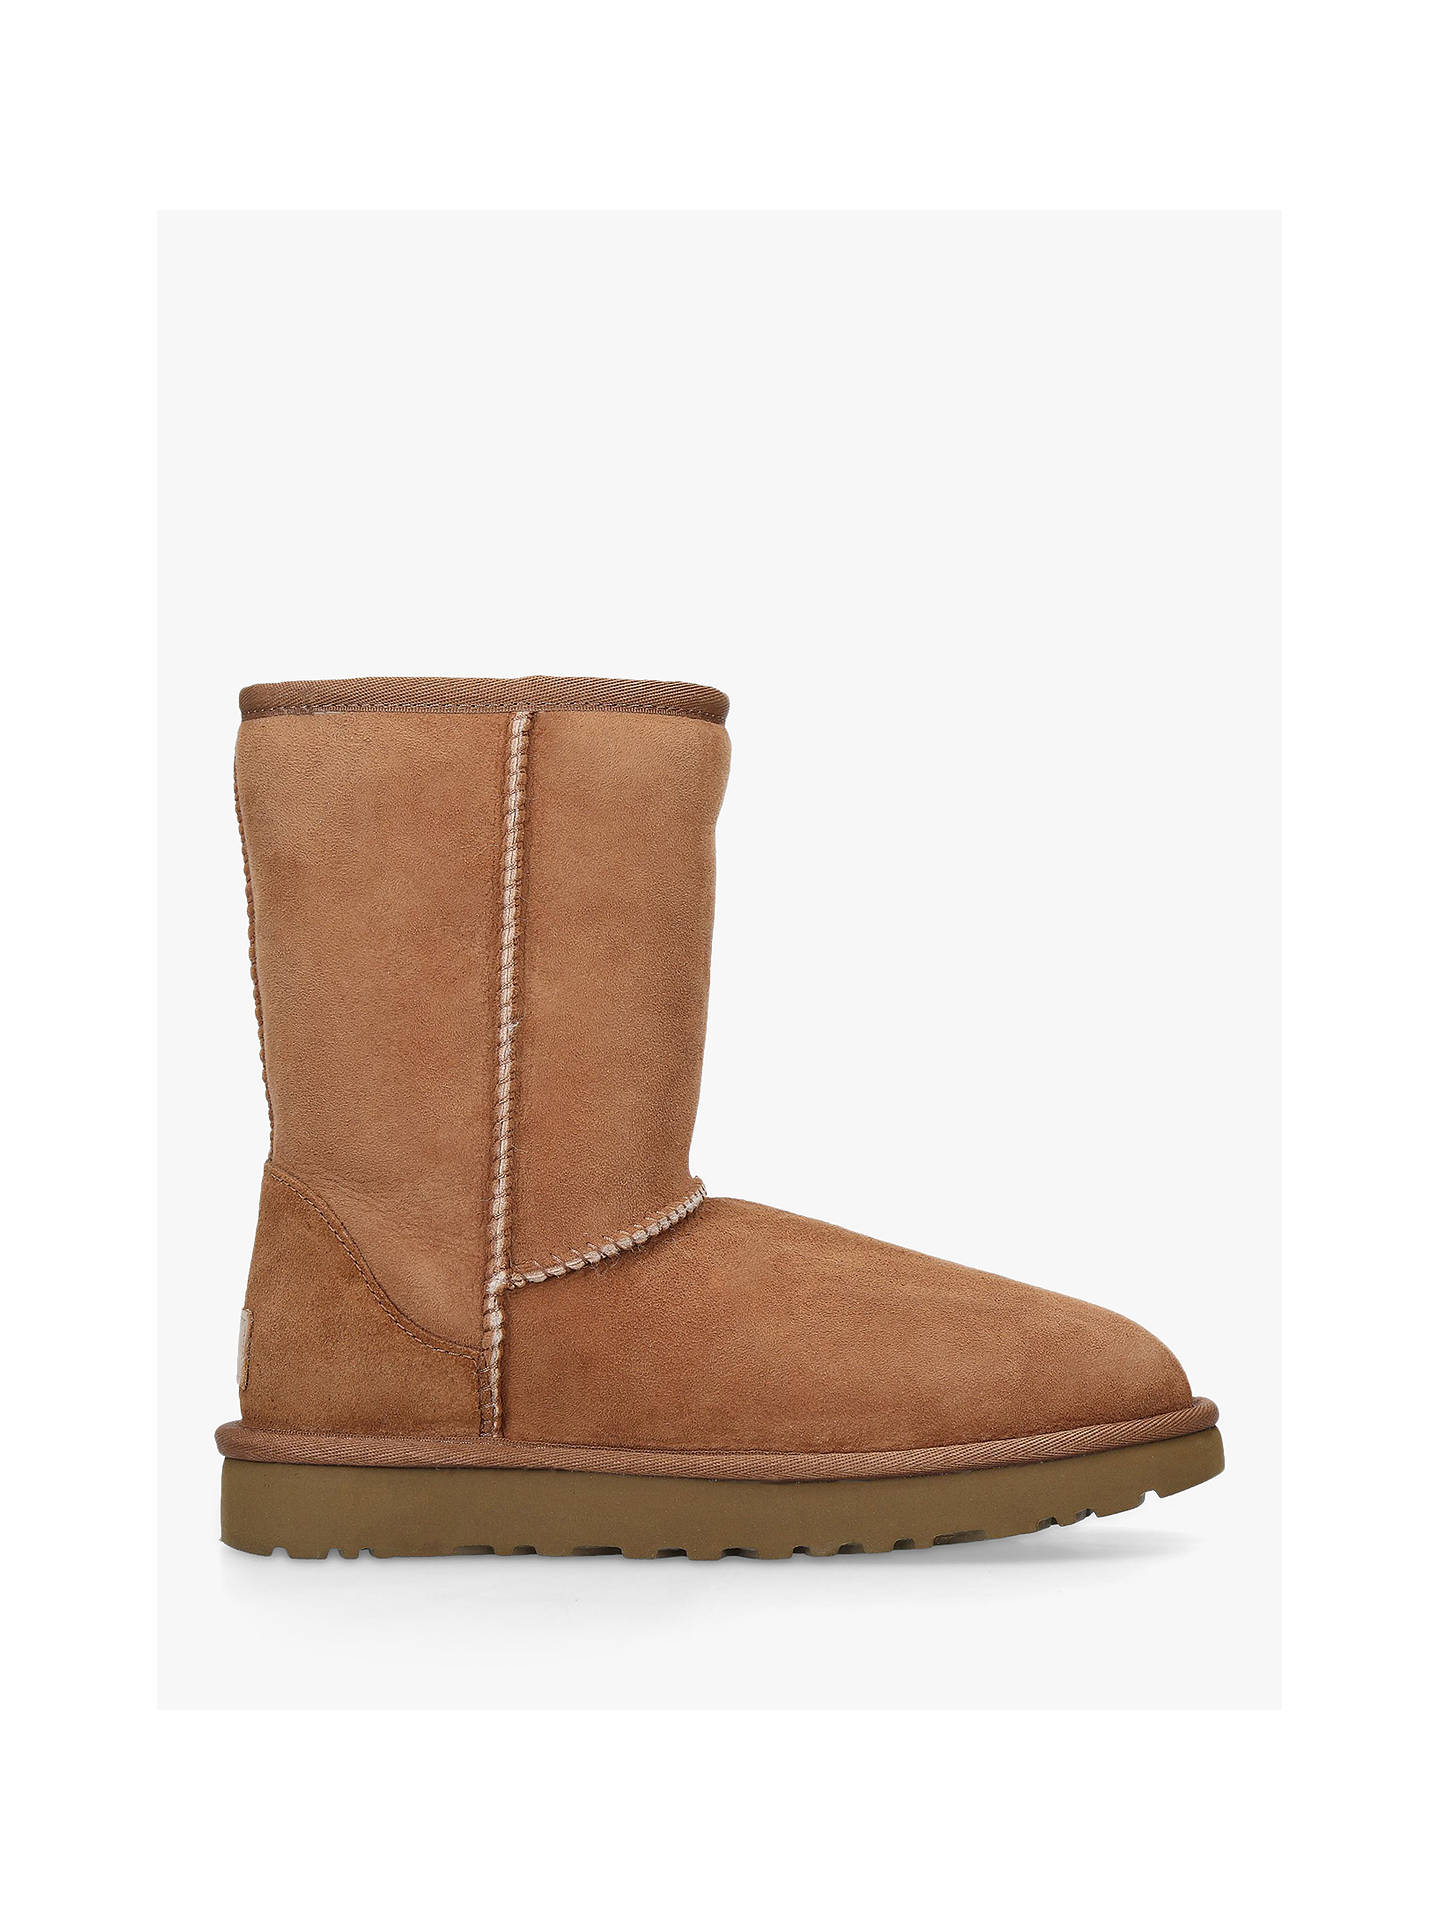 2e5bbe4306 UGG Classic II Short Sheepskin Ankle Boots at John Lewis   Partners